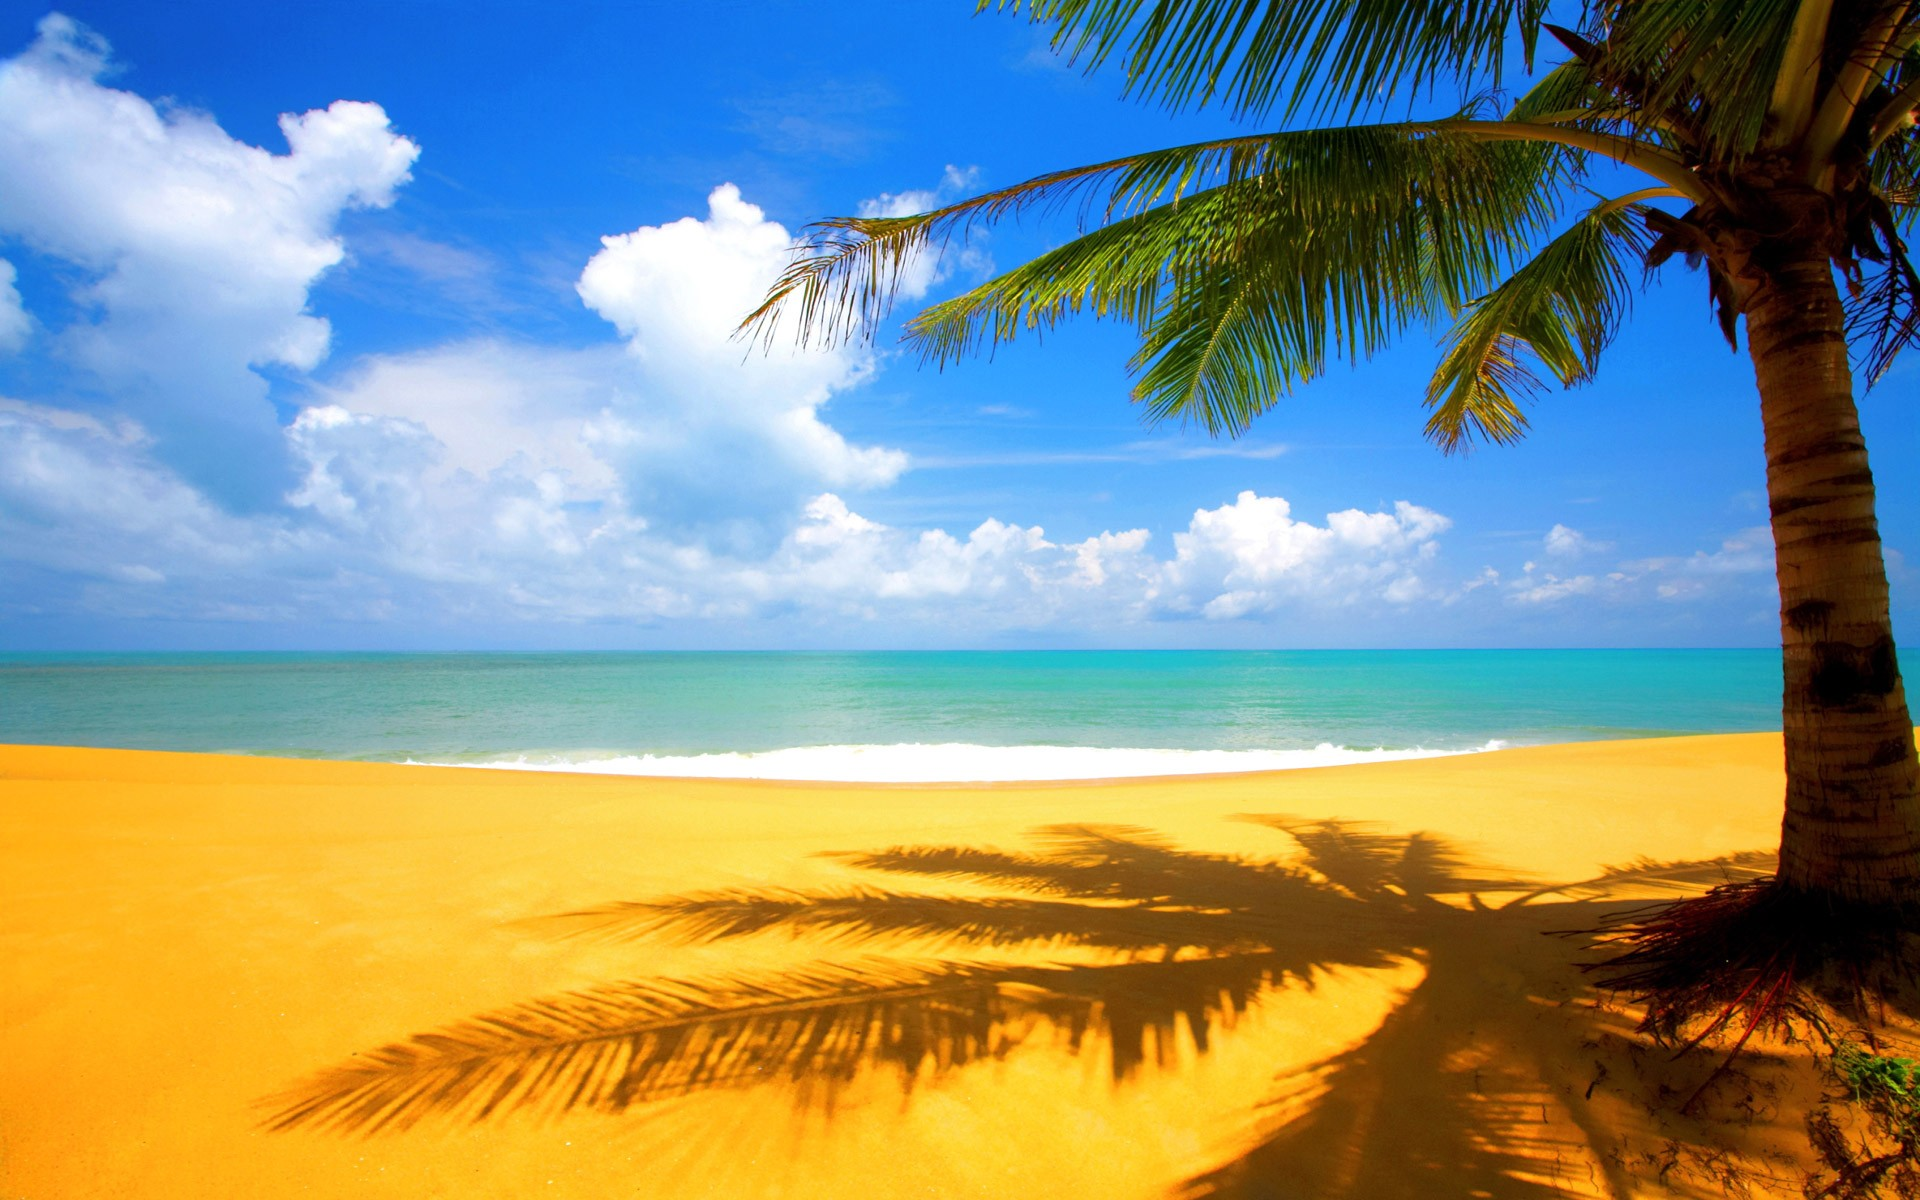 beach desktop wallpapers beach photos beach pictures beach images 1920x1200